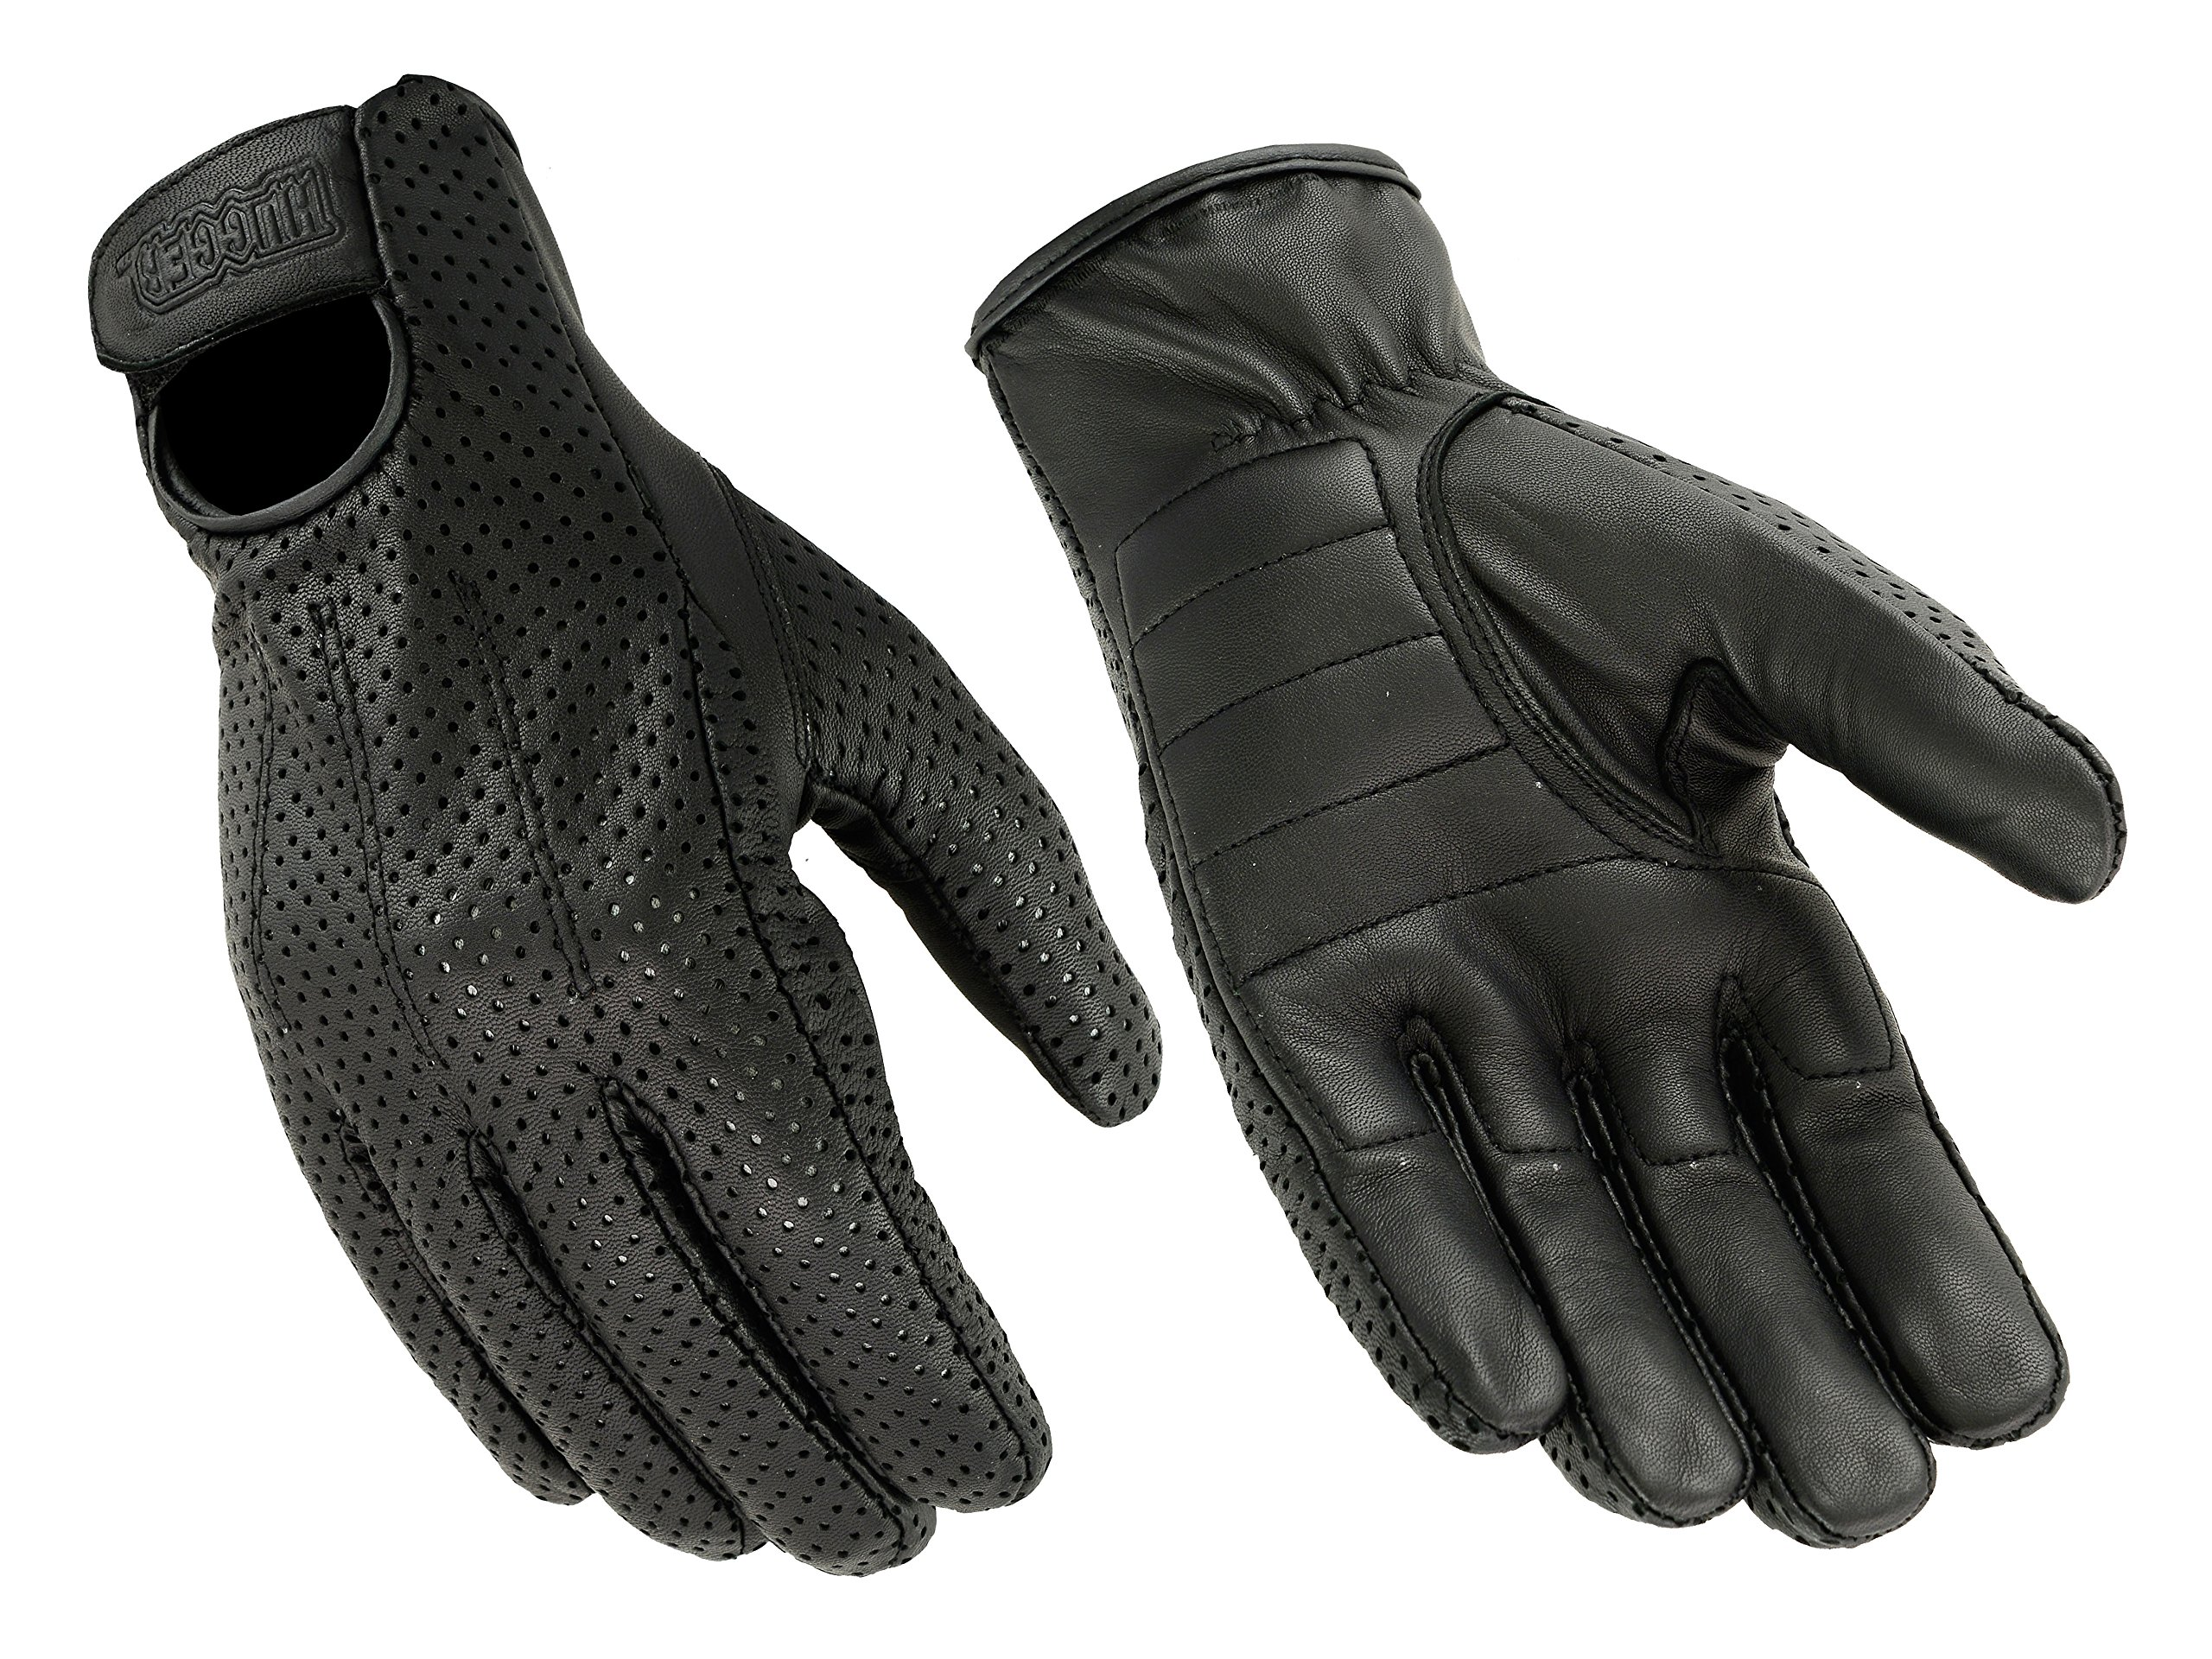 Hugger Men's Breathable Glove for Driving Motorcycles with Lightly Padded Palms 3X-Large Black